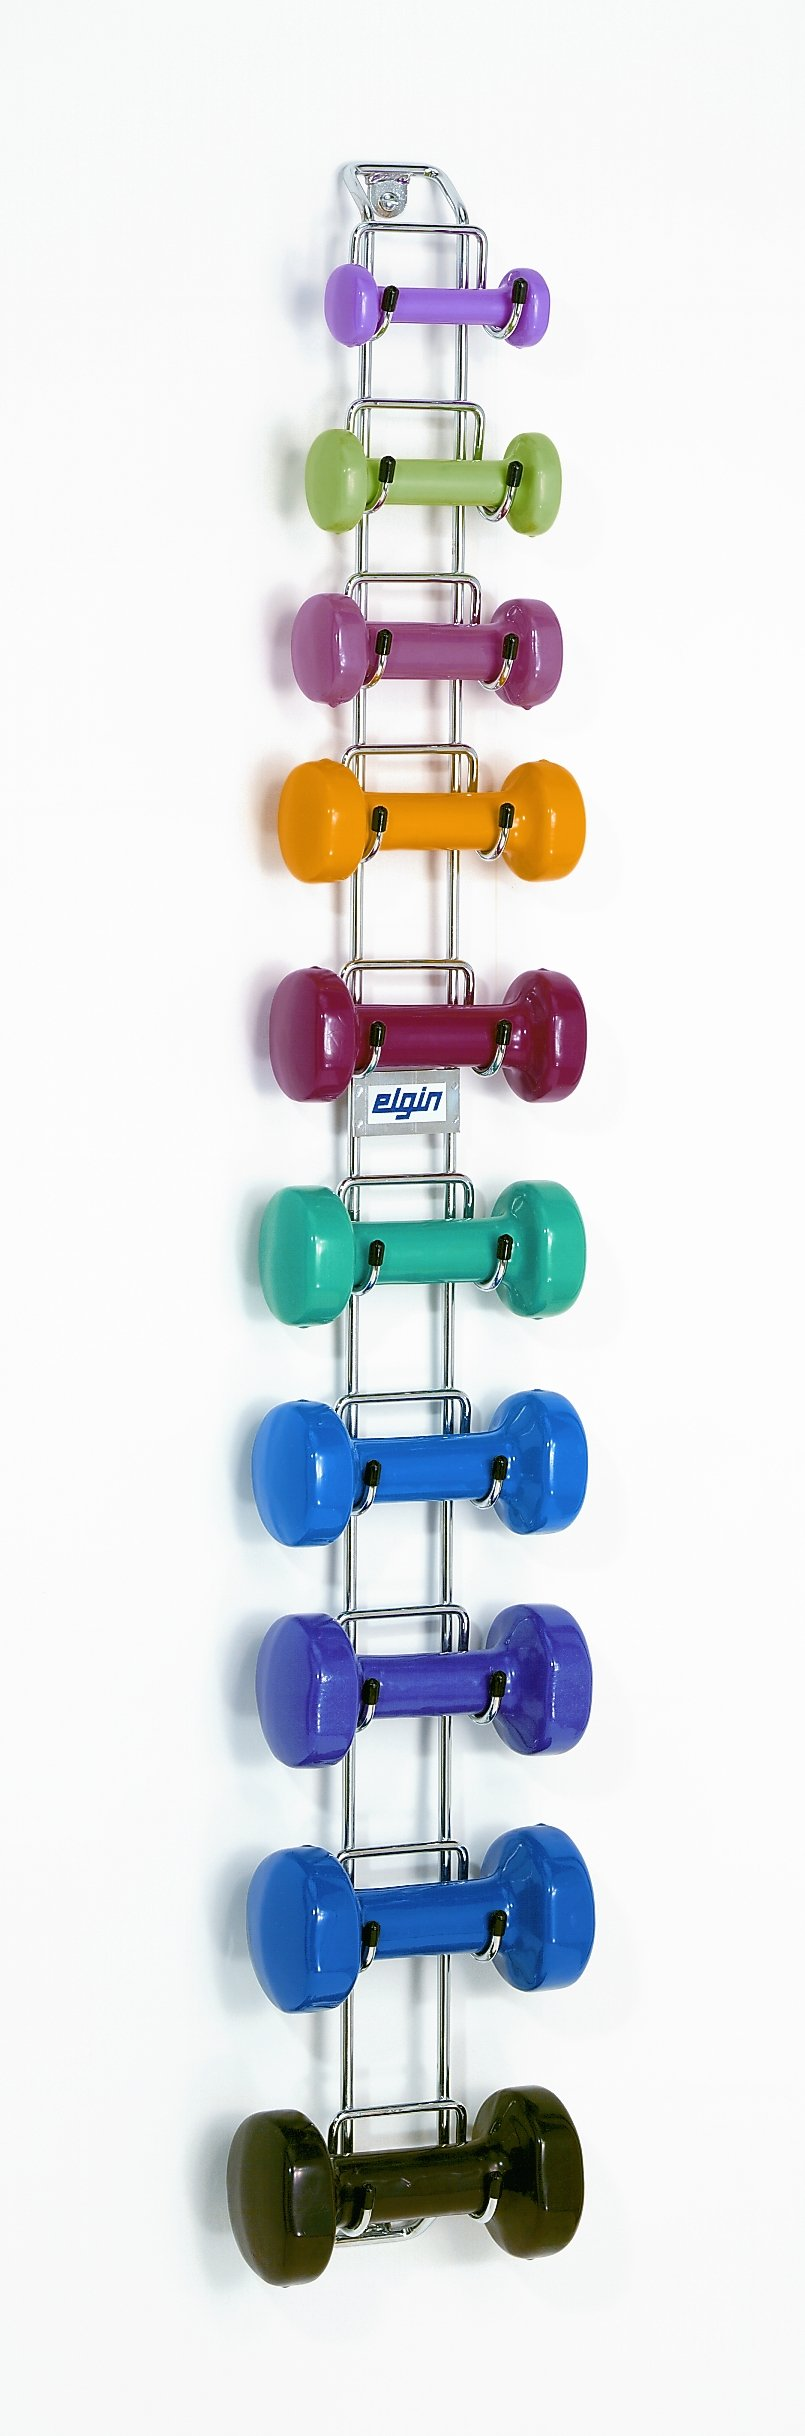 Elgin WR6 Wall-Mounted Dumbbell Rack Package